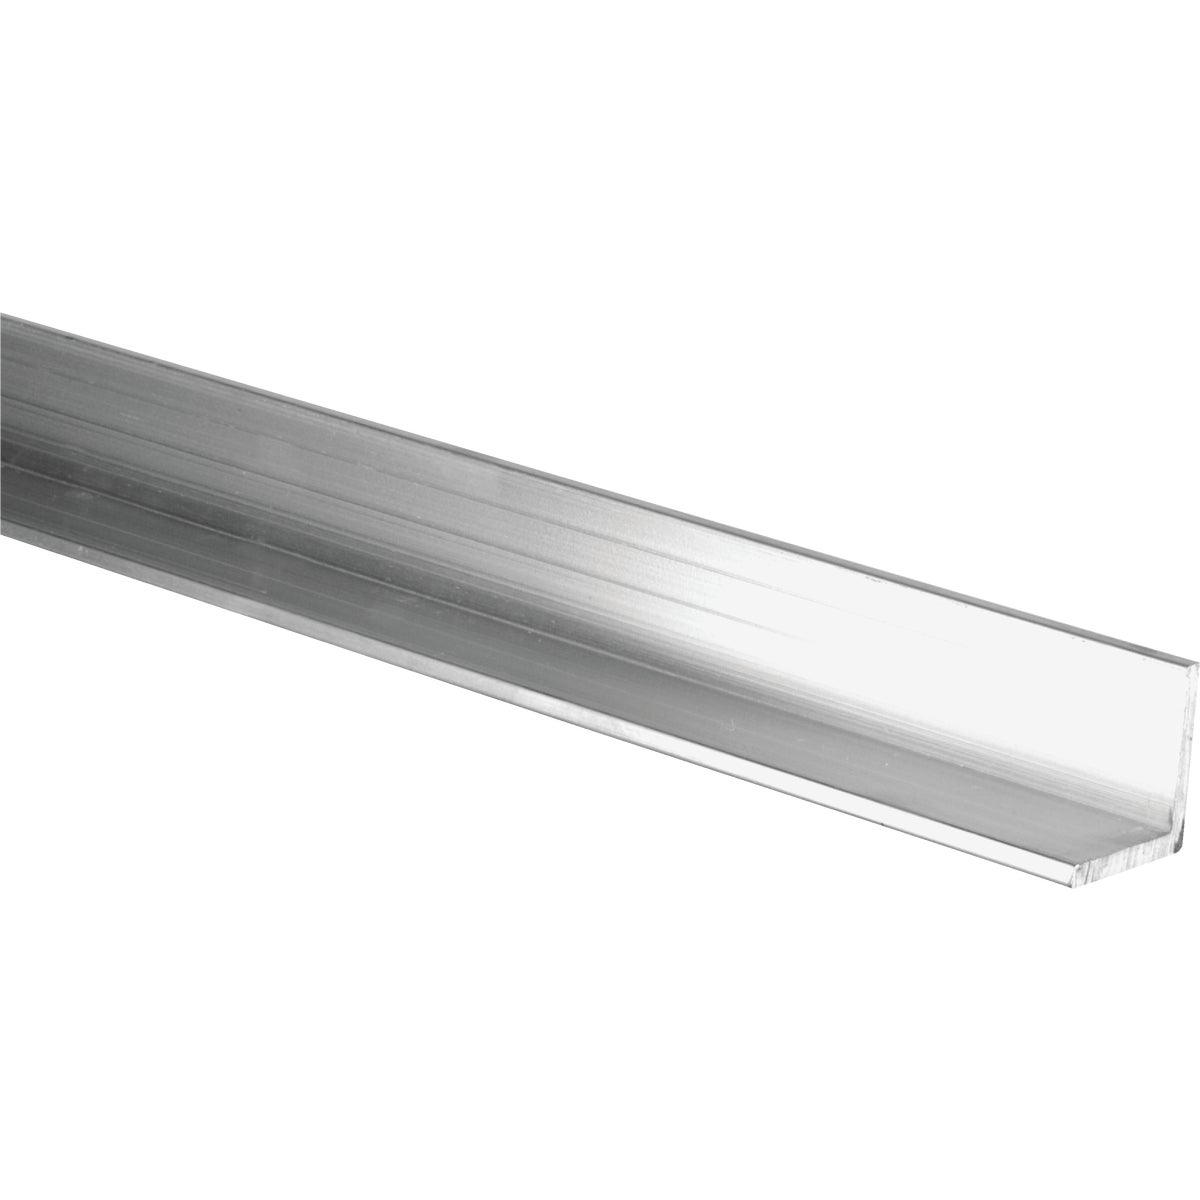 1/8X1X6' ALUM ANGLE - N247429 by National Mfg Co